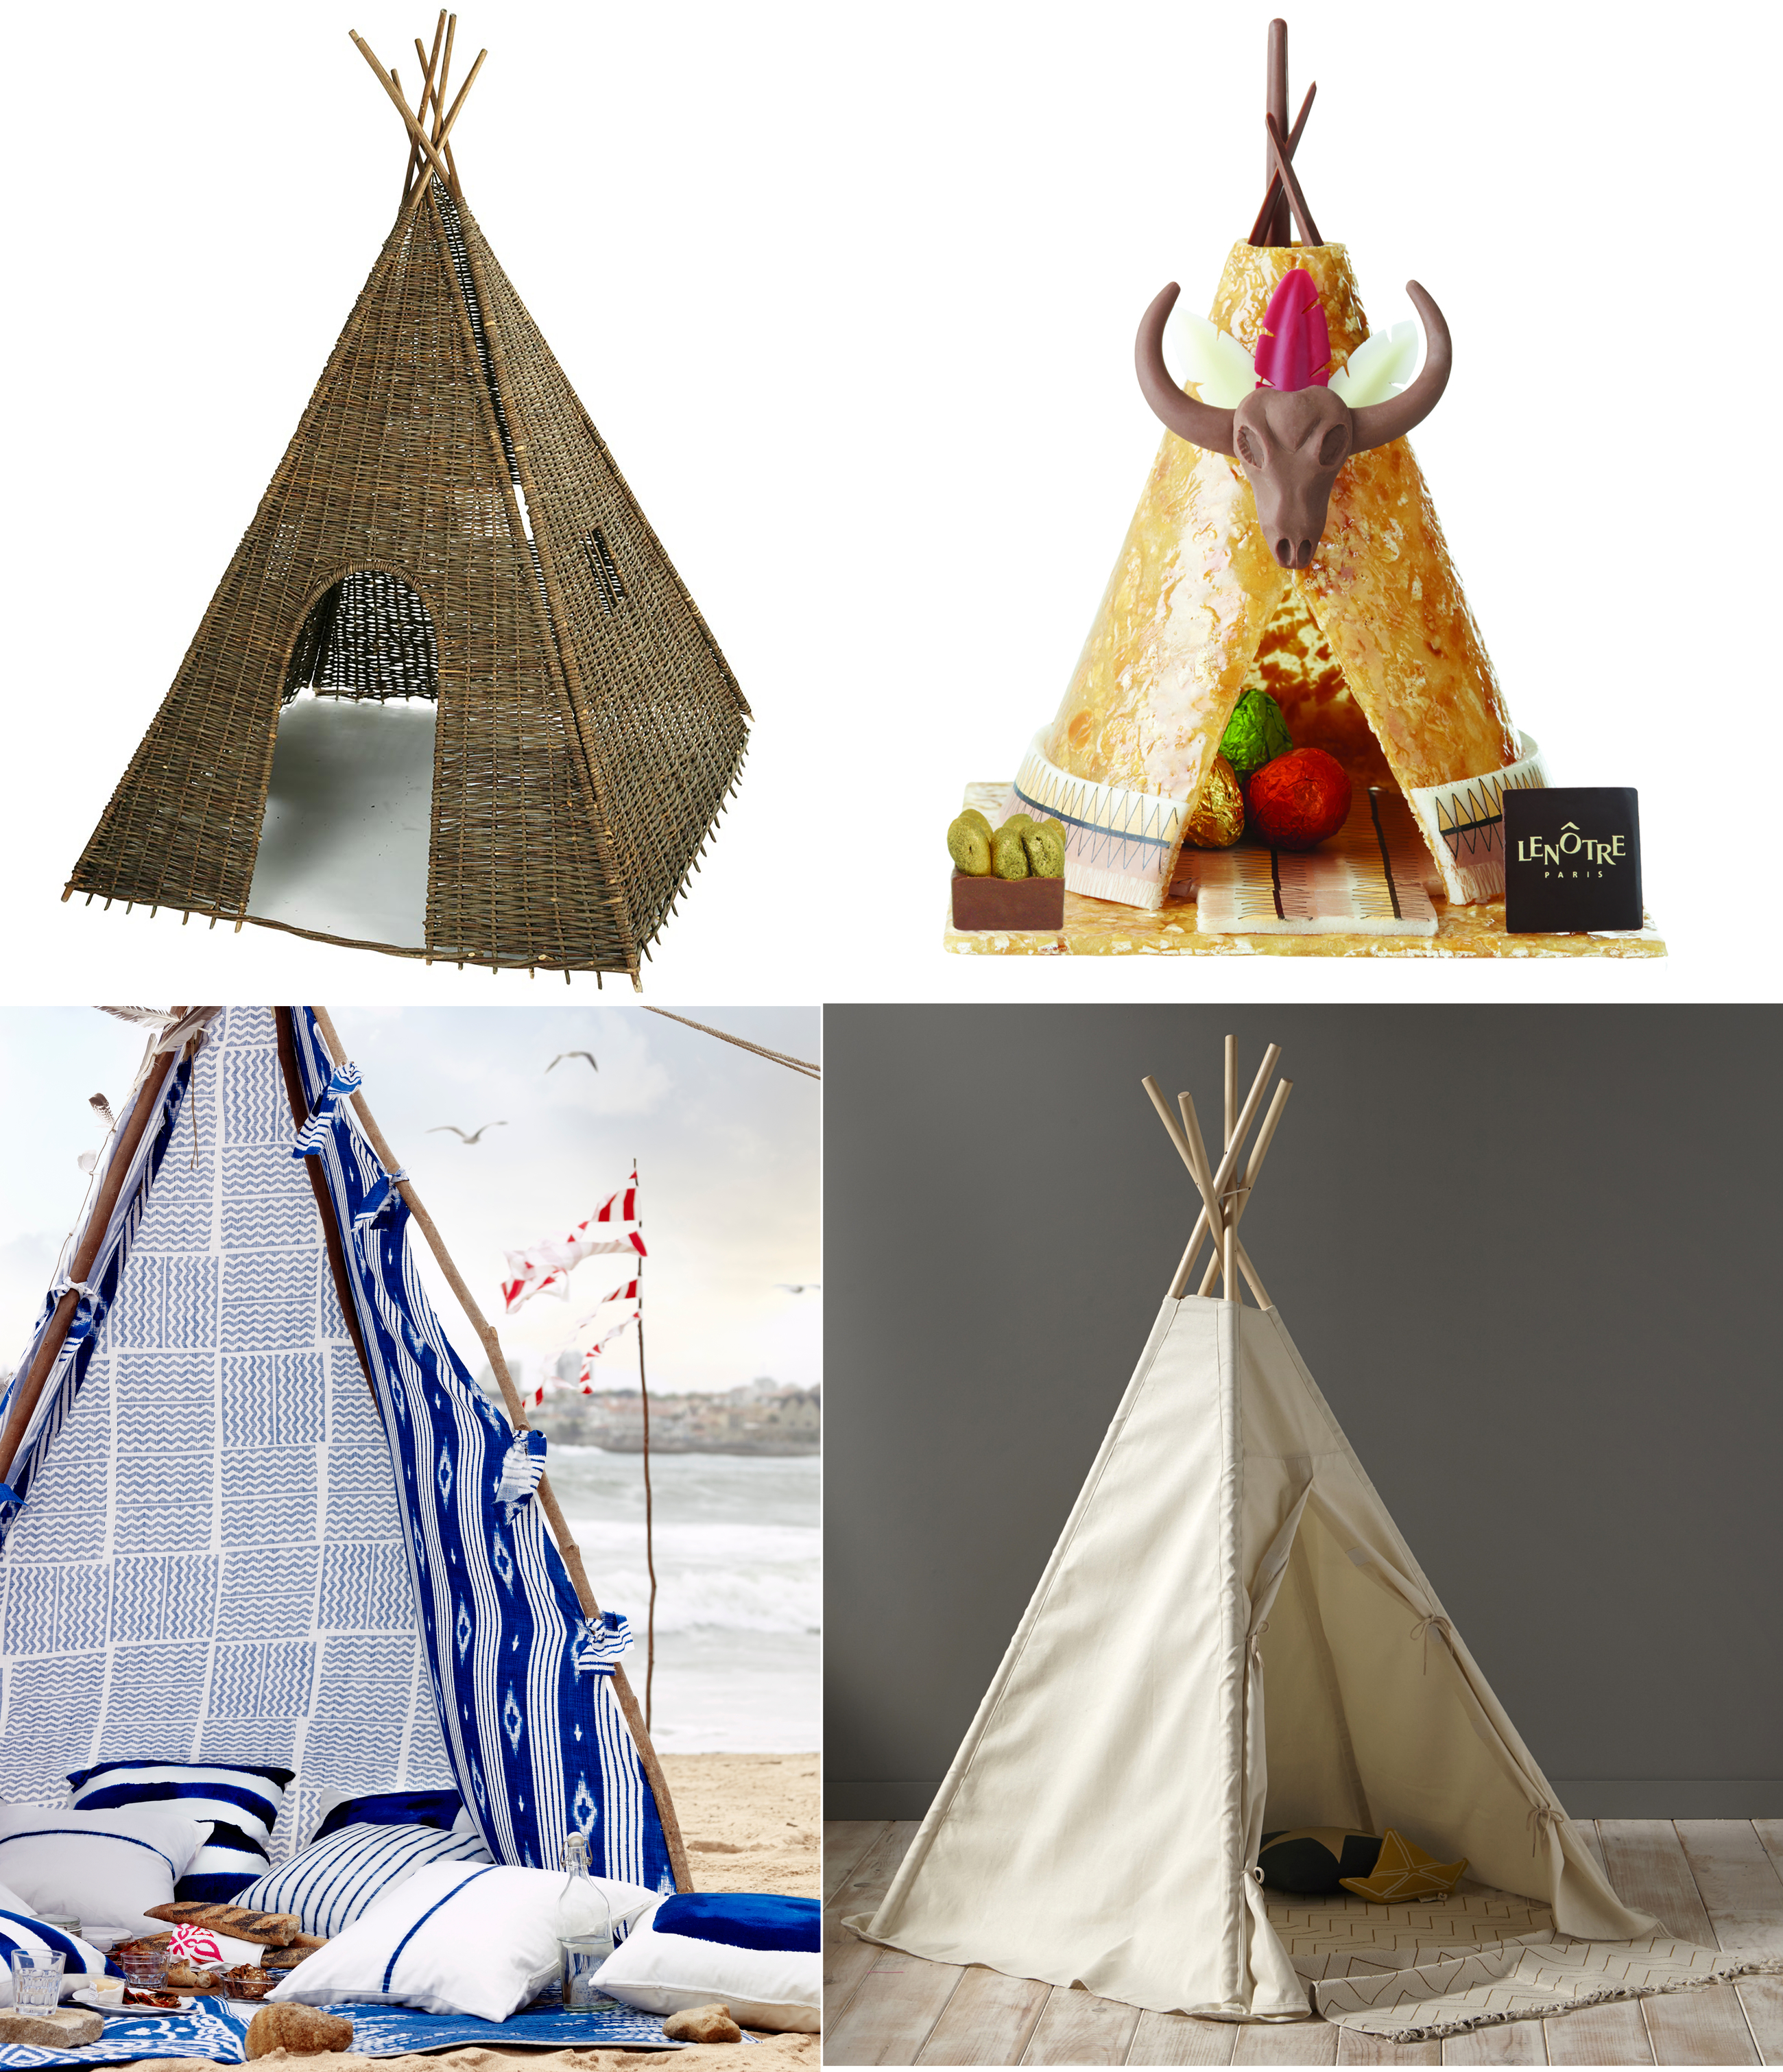 maisons du monde len tre ikea cyrillus maison tipis. Black Bedroom Furniture Sets. Home Design Ideas